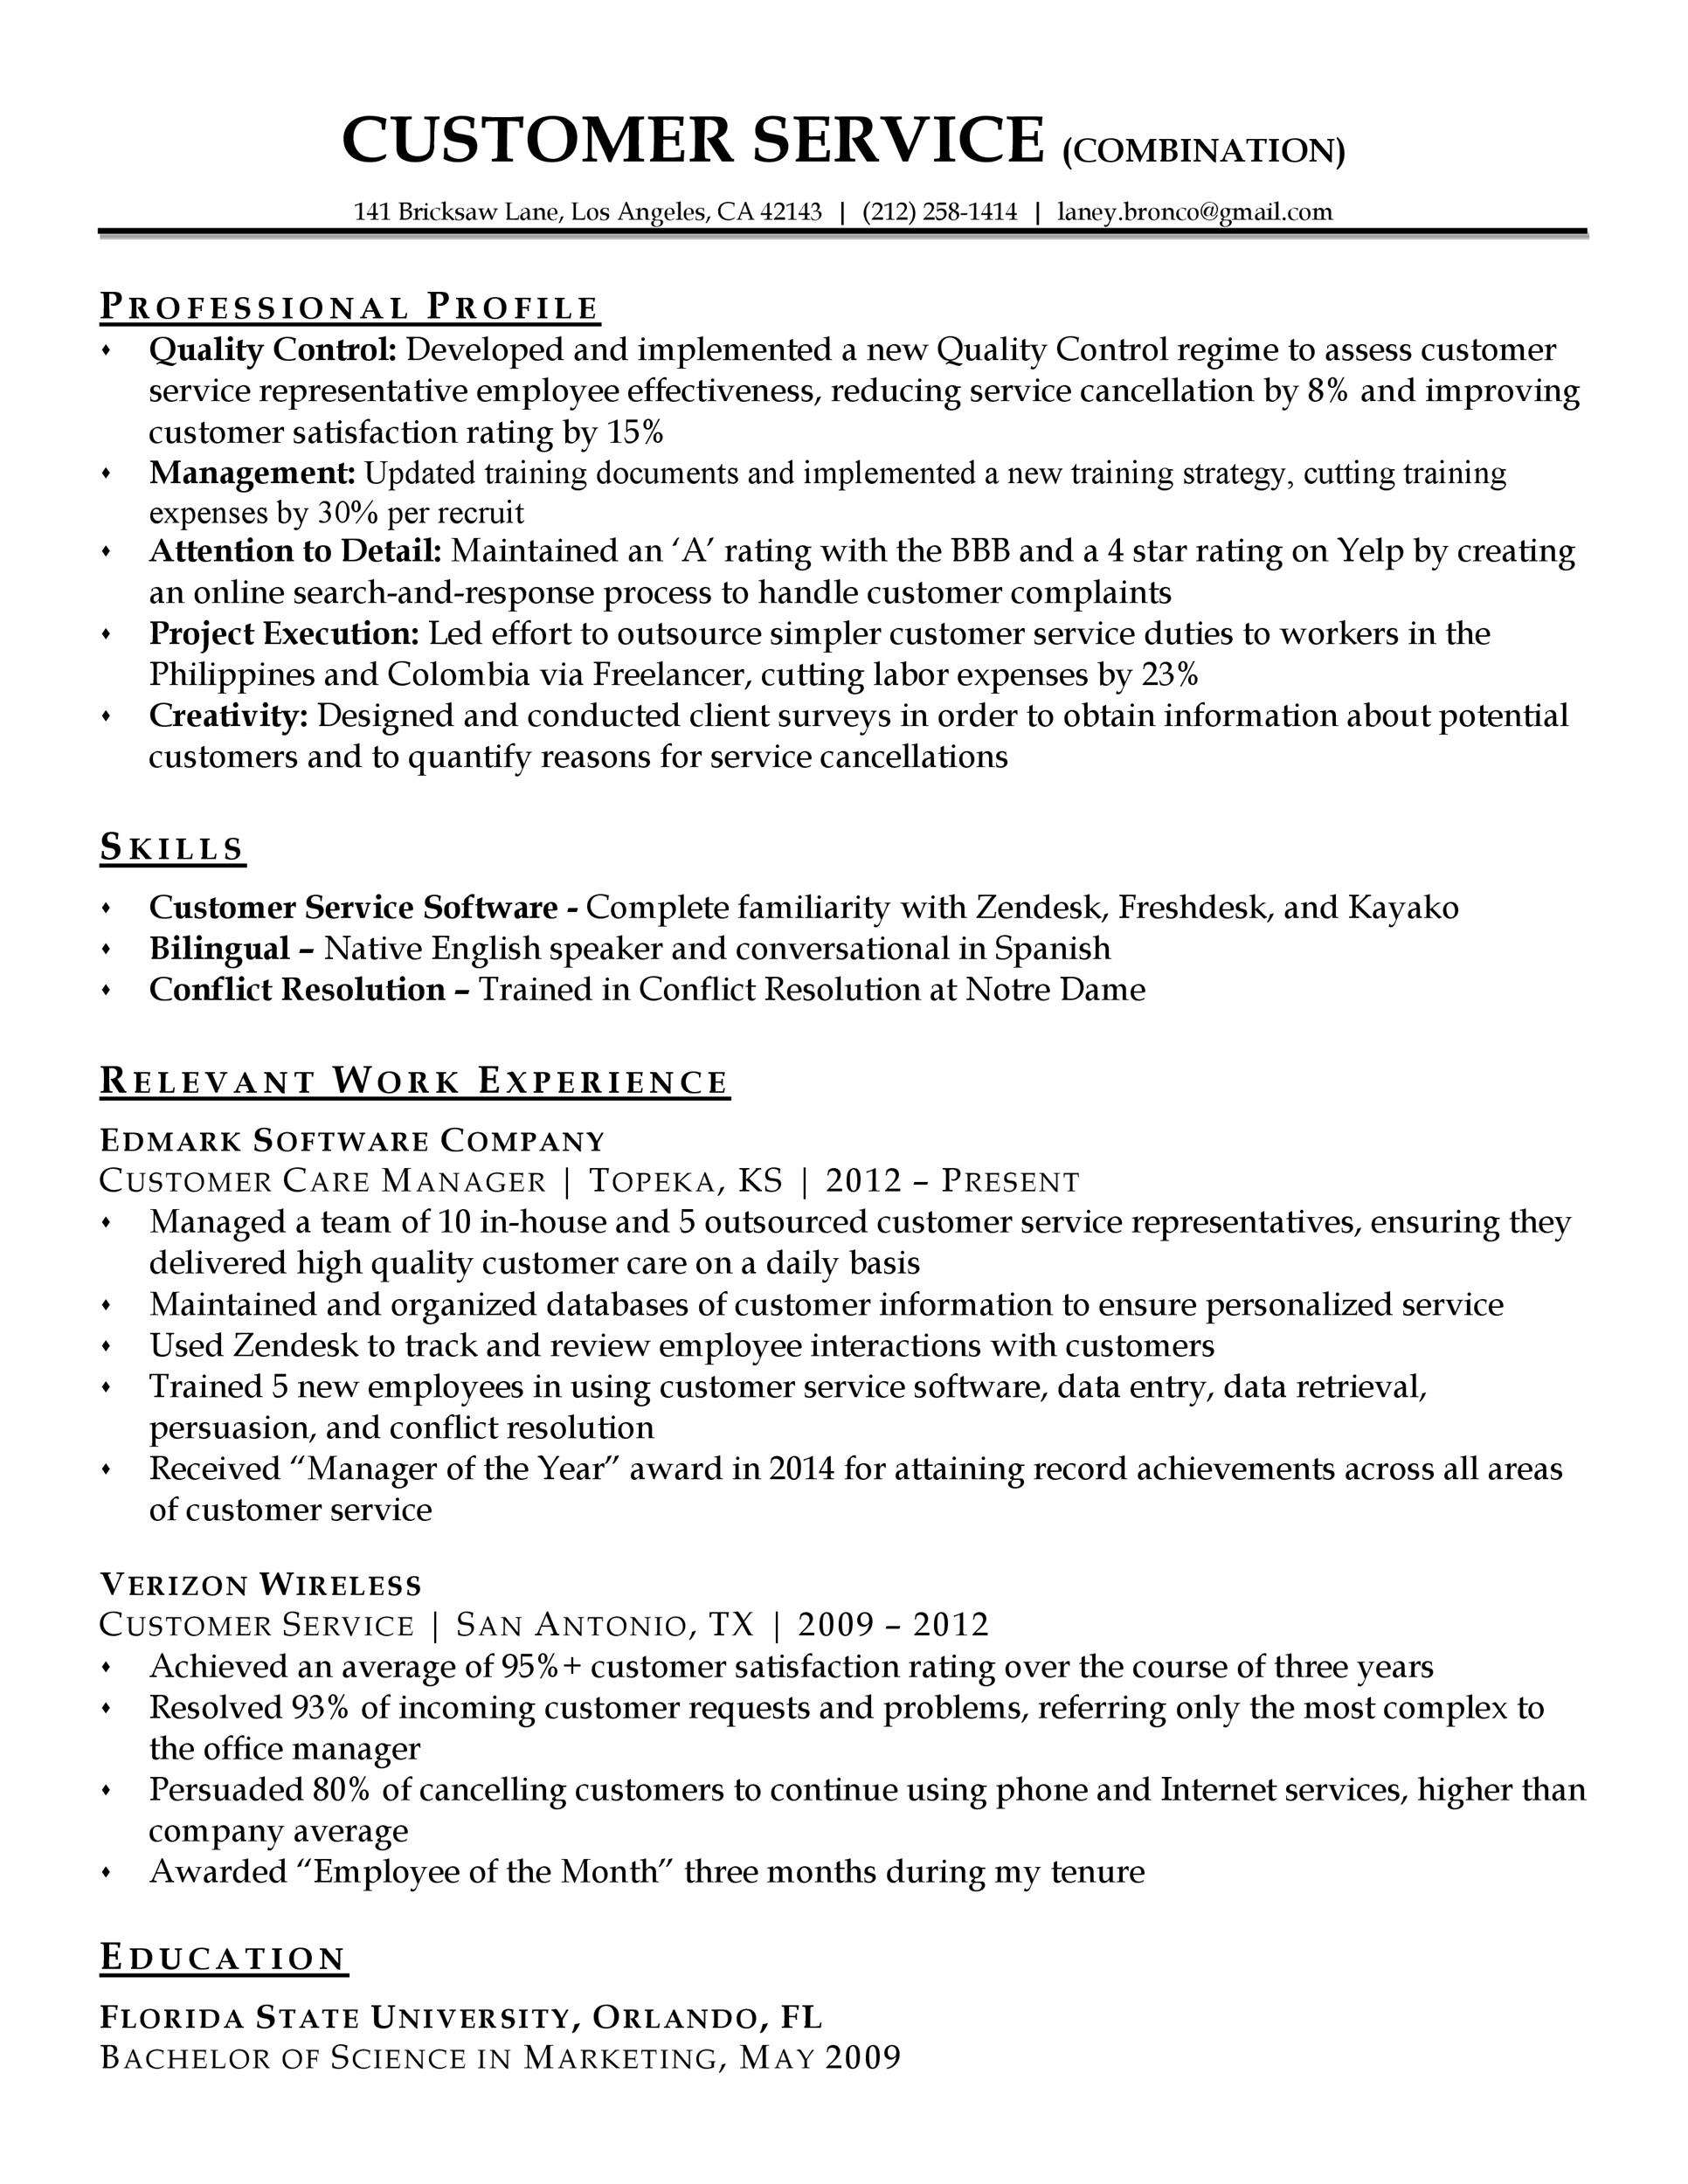 30+ Customer Service Resume Examples ᐅ Template Lab